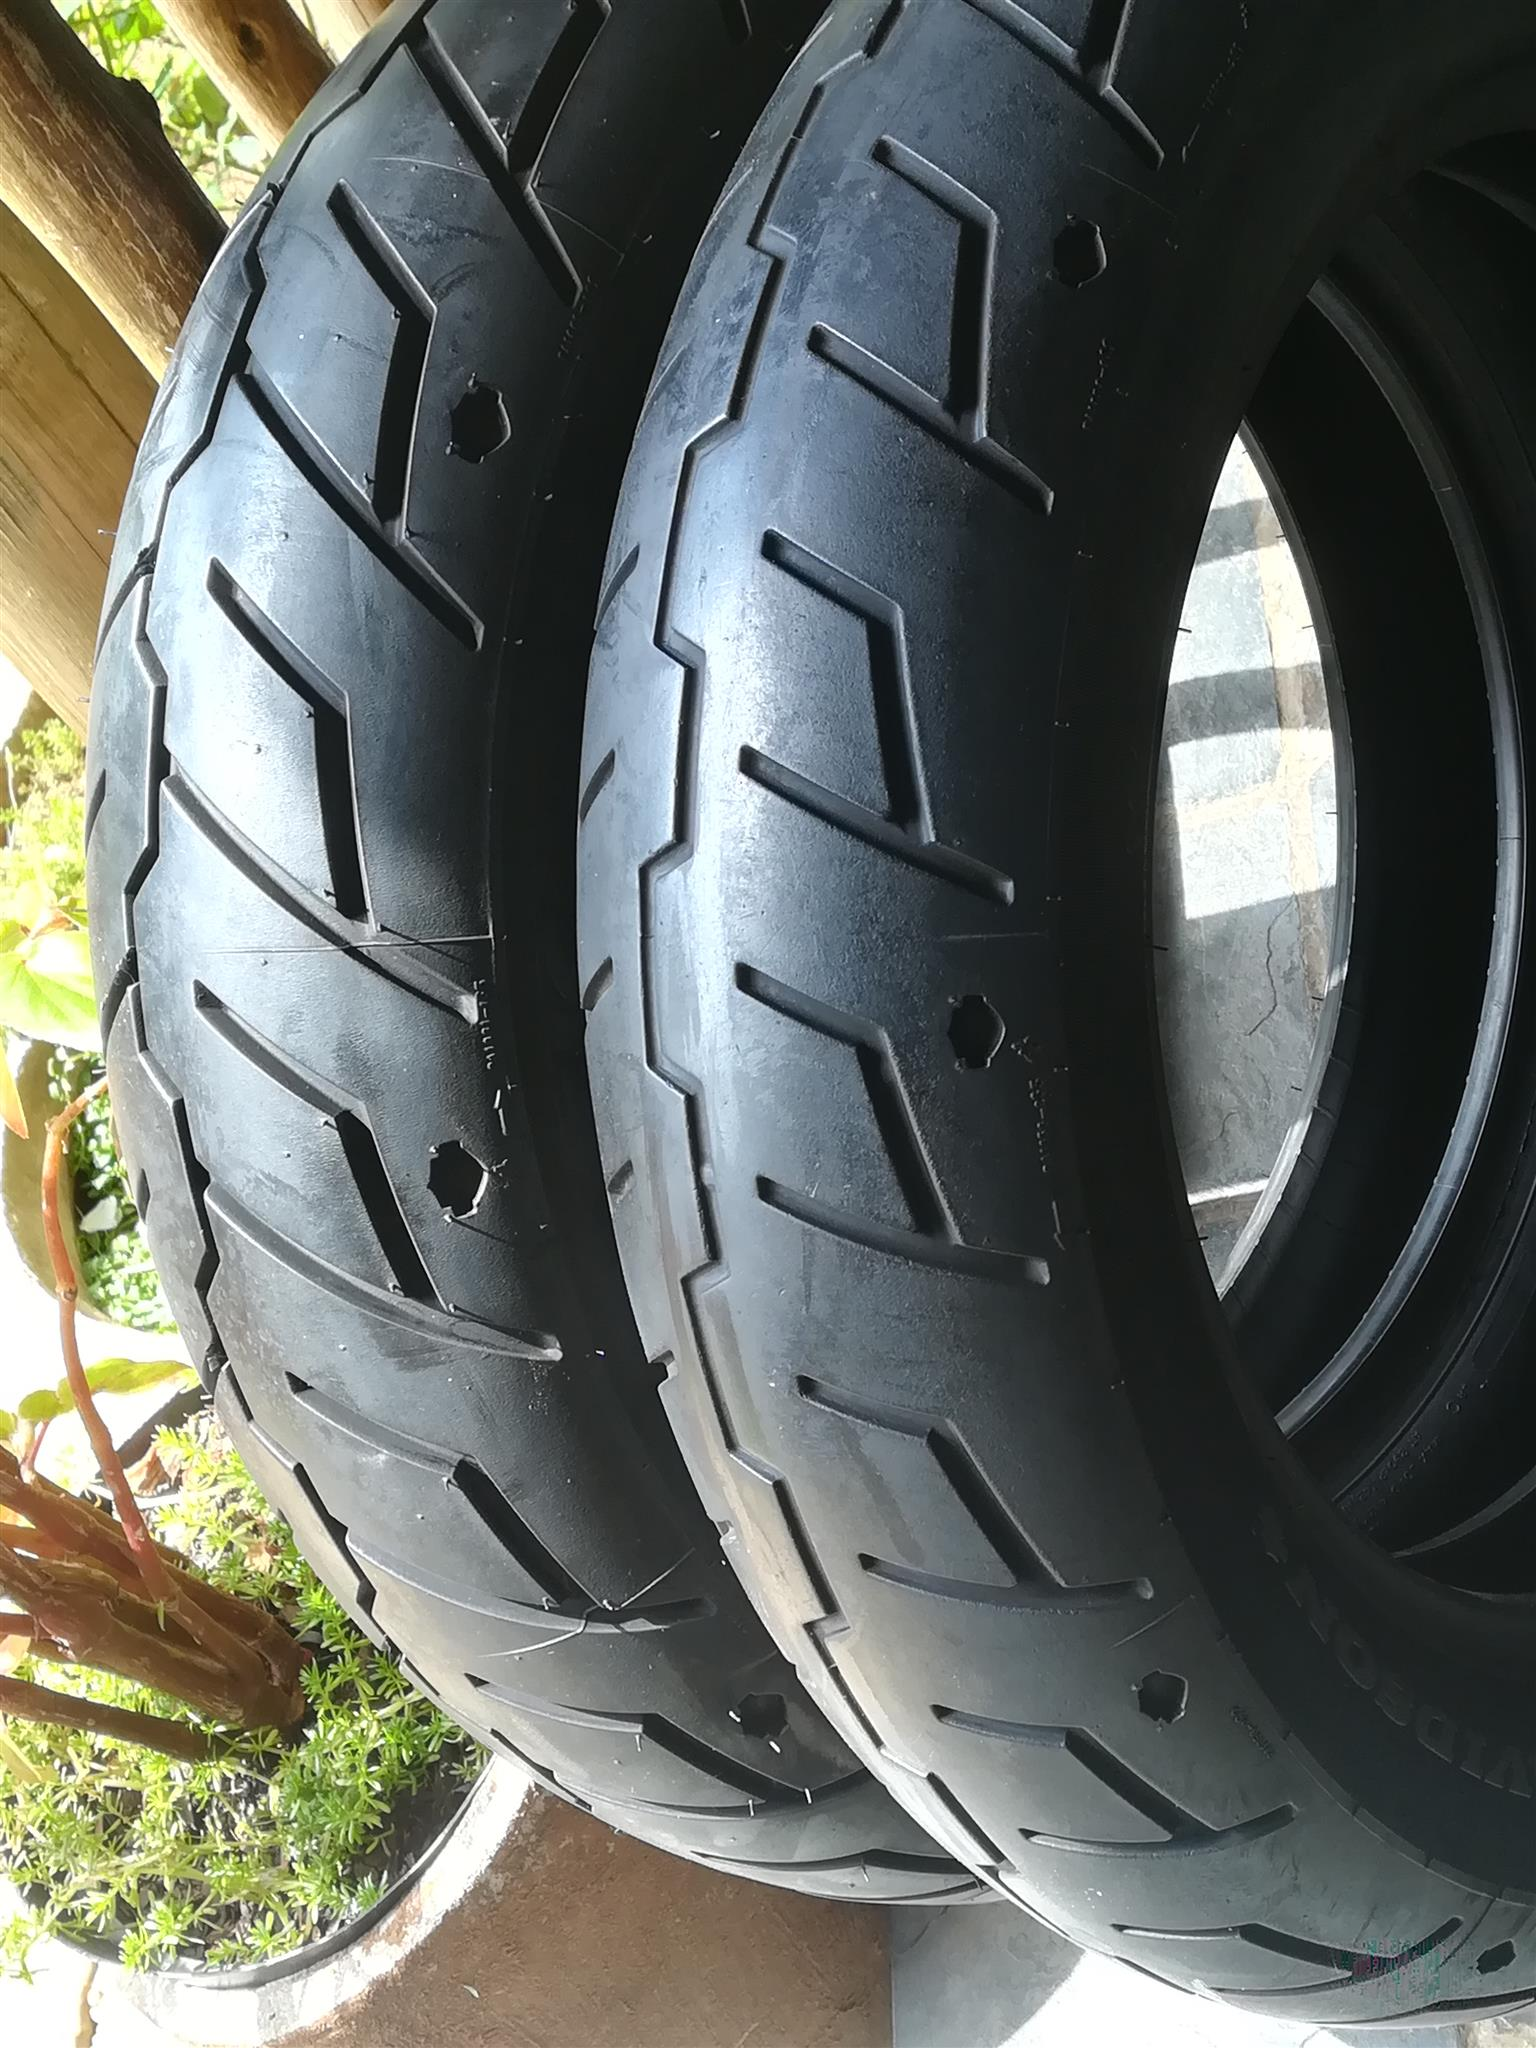 Harley Davidson Sportster Michelin tyres 130x90x16 and 150x80x16